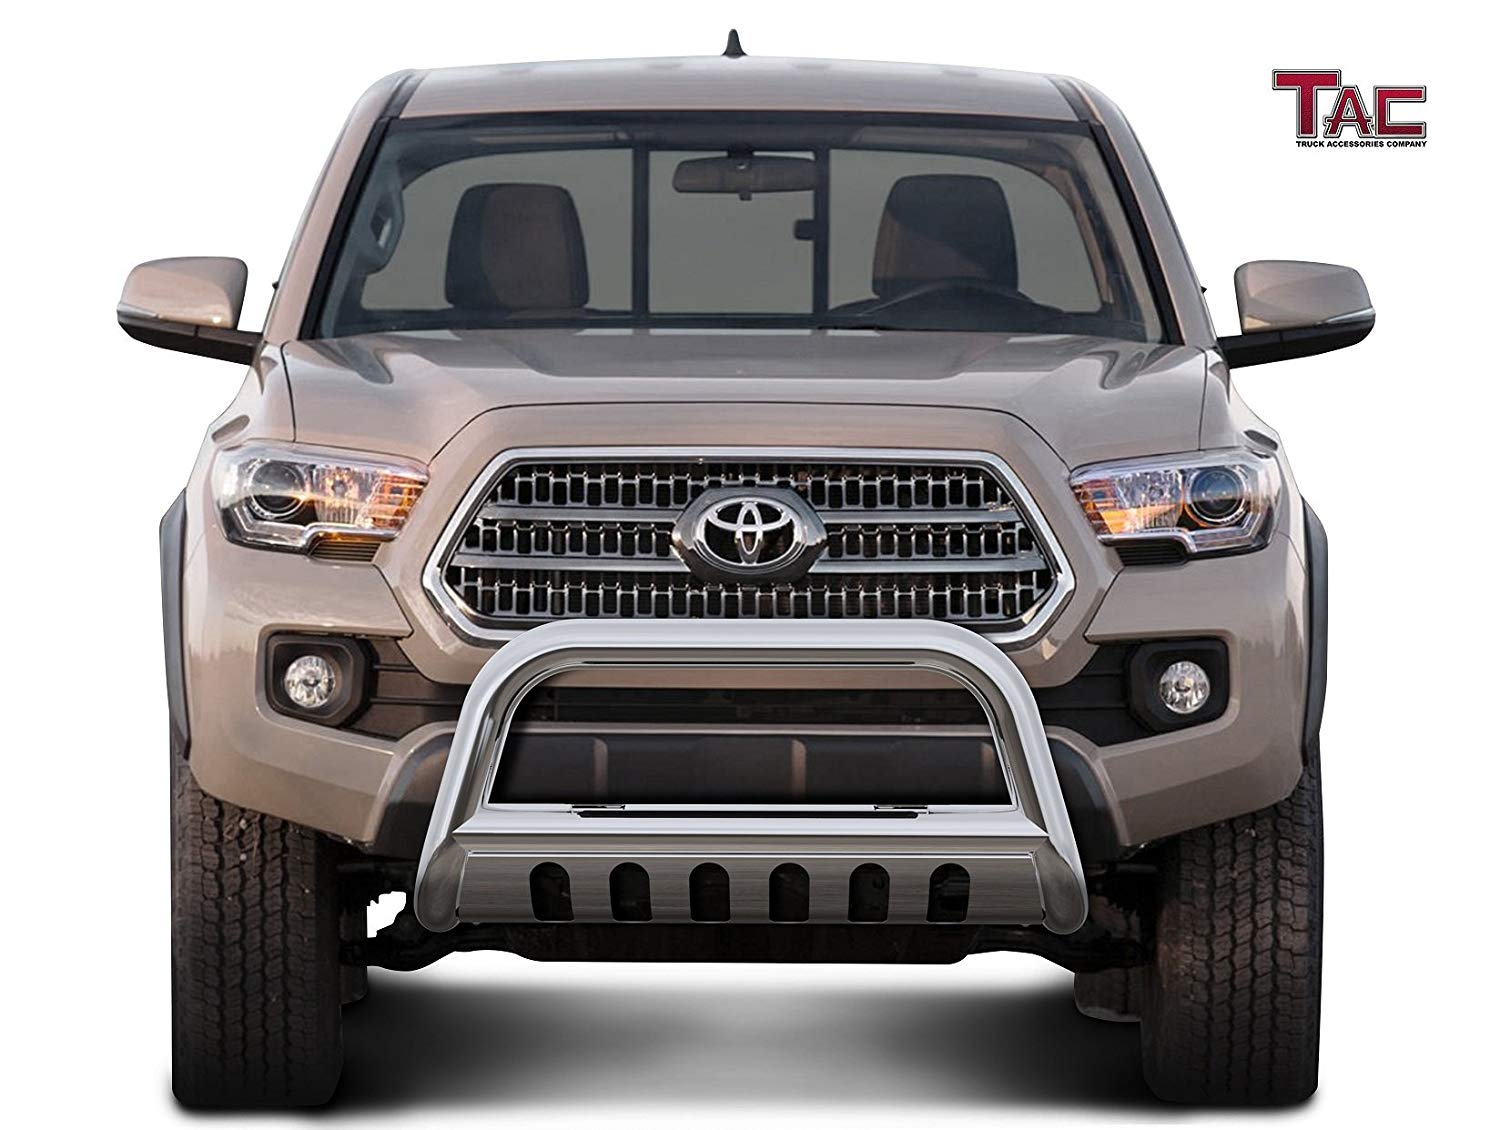 TAC 3 LED Lighting Bull Bar Black Compatible with 2016-2020 Toyota Tacoma Pickup Truck Front Bumper Guard Grille Guard with LED Off-Road Lights Exterior Accessories